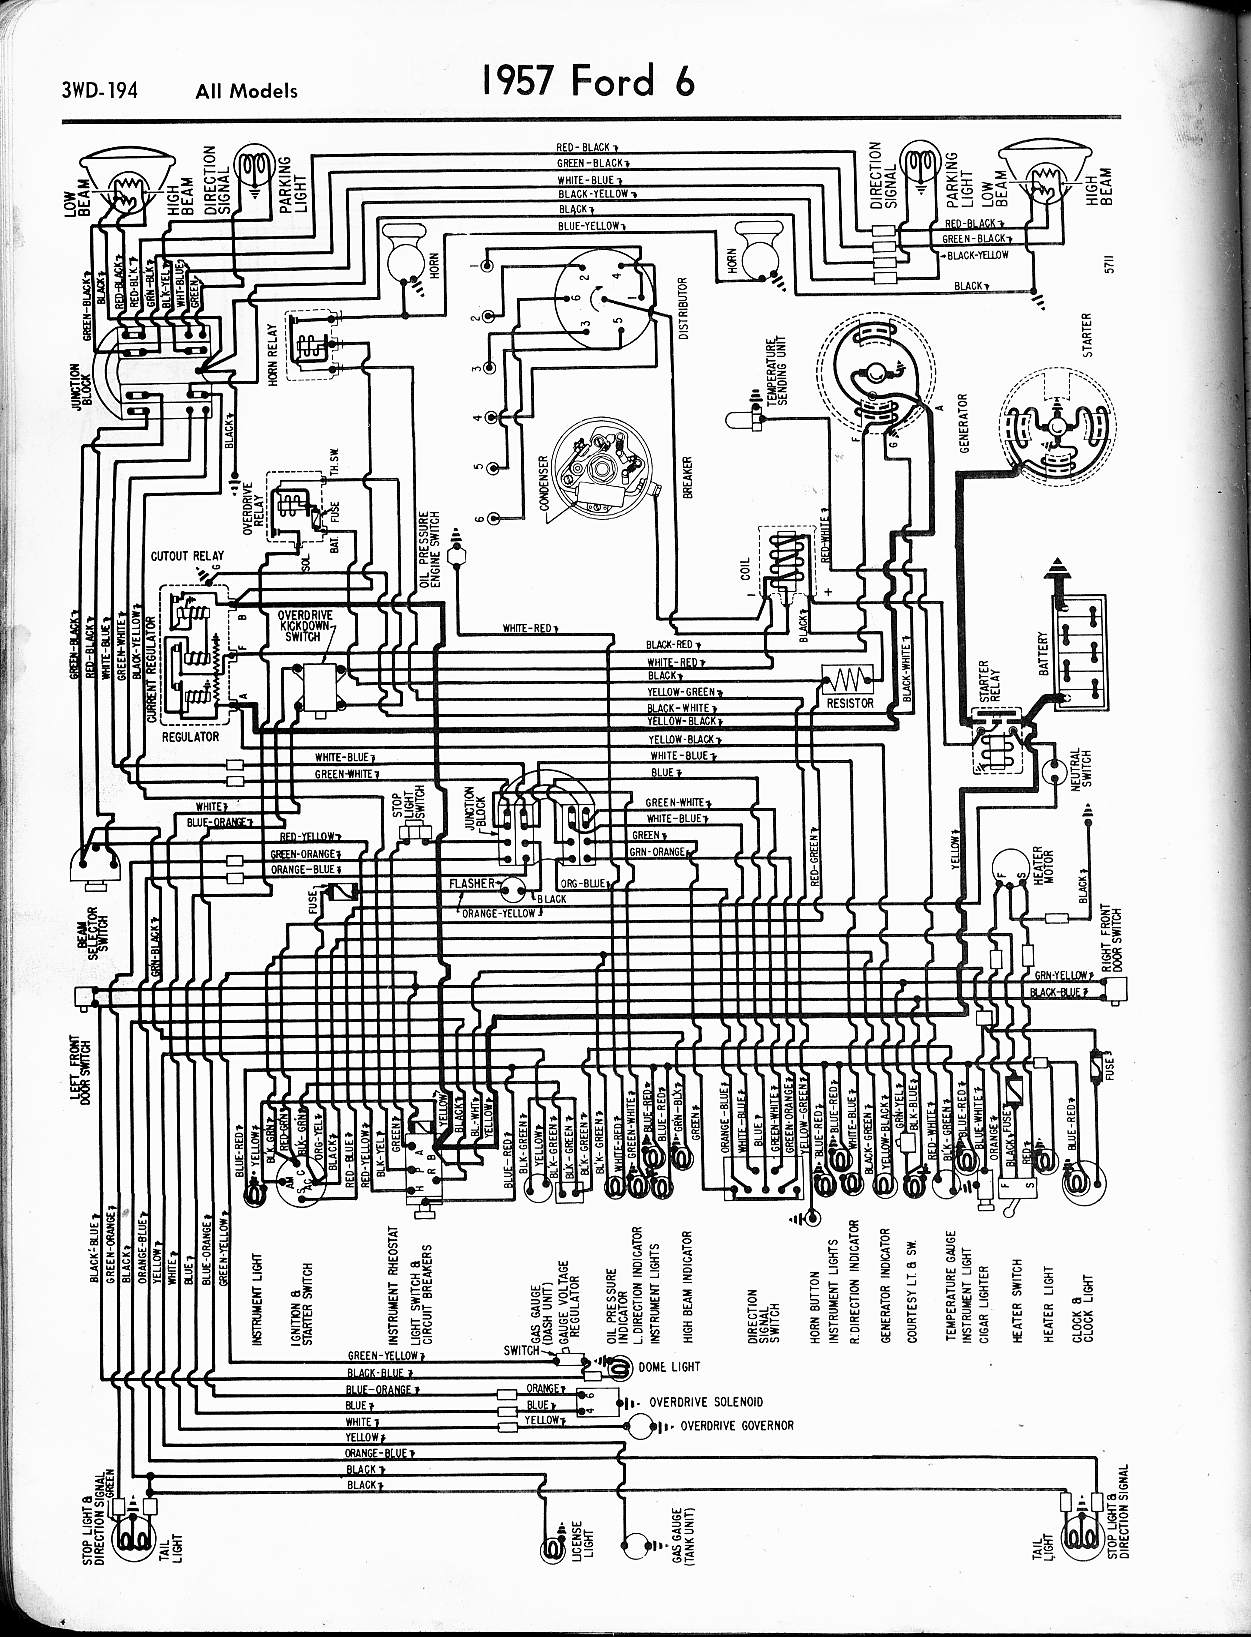 1978 Ford F150 Wiring Schematic Download Diagrams 78 Diagram Basics Rh Boltsoft Net Radio